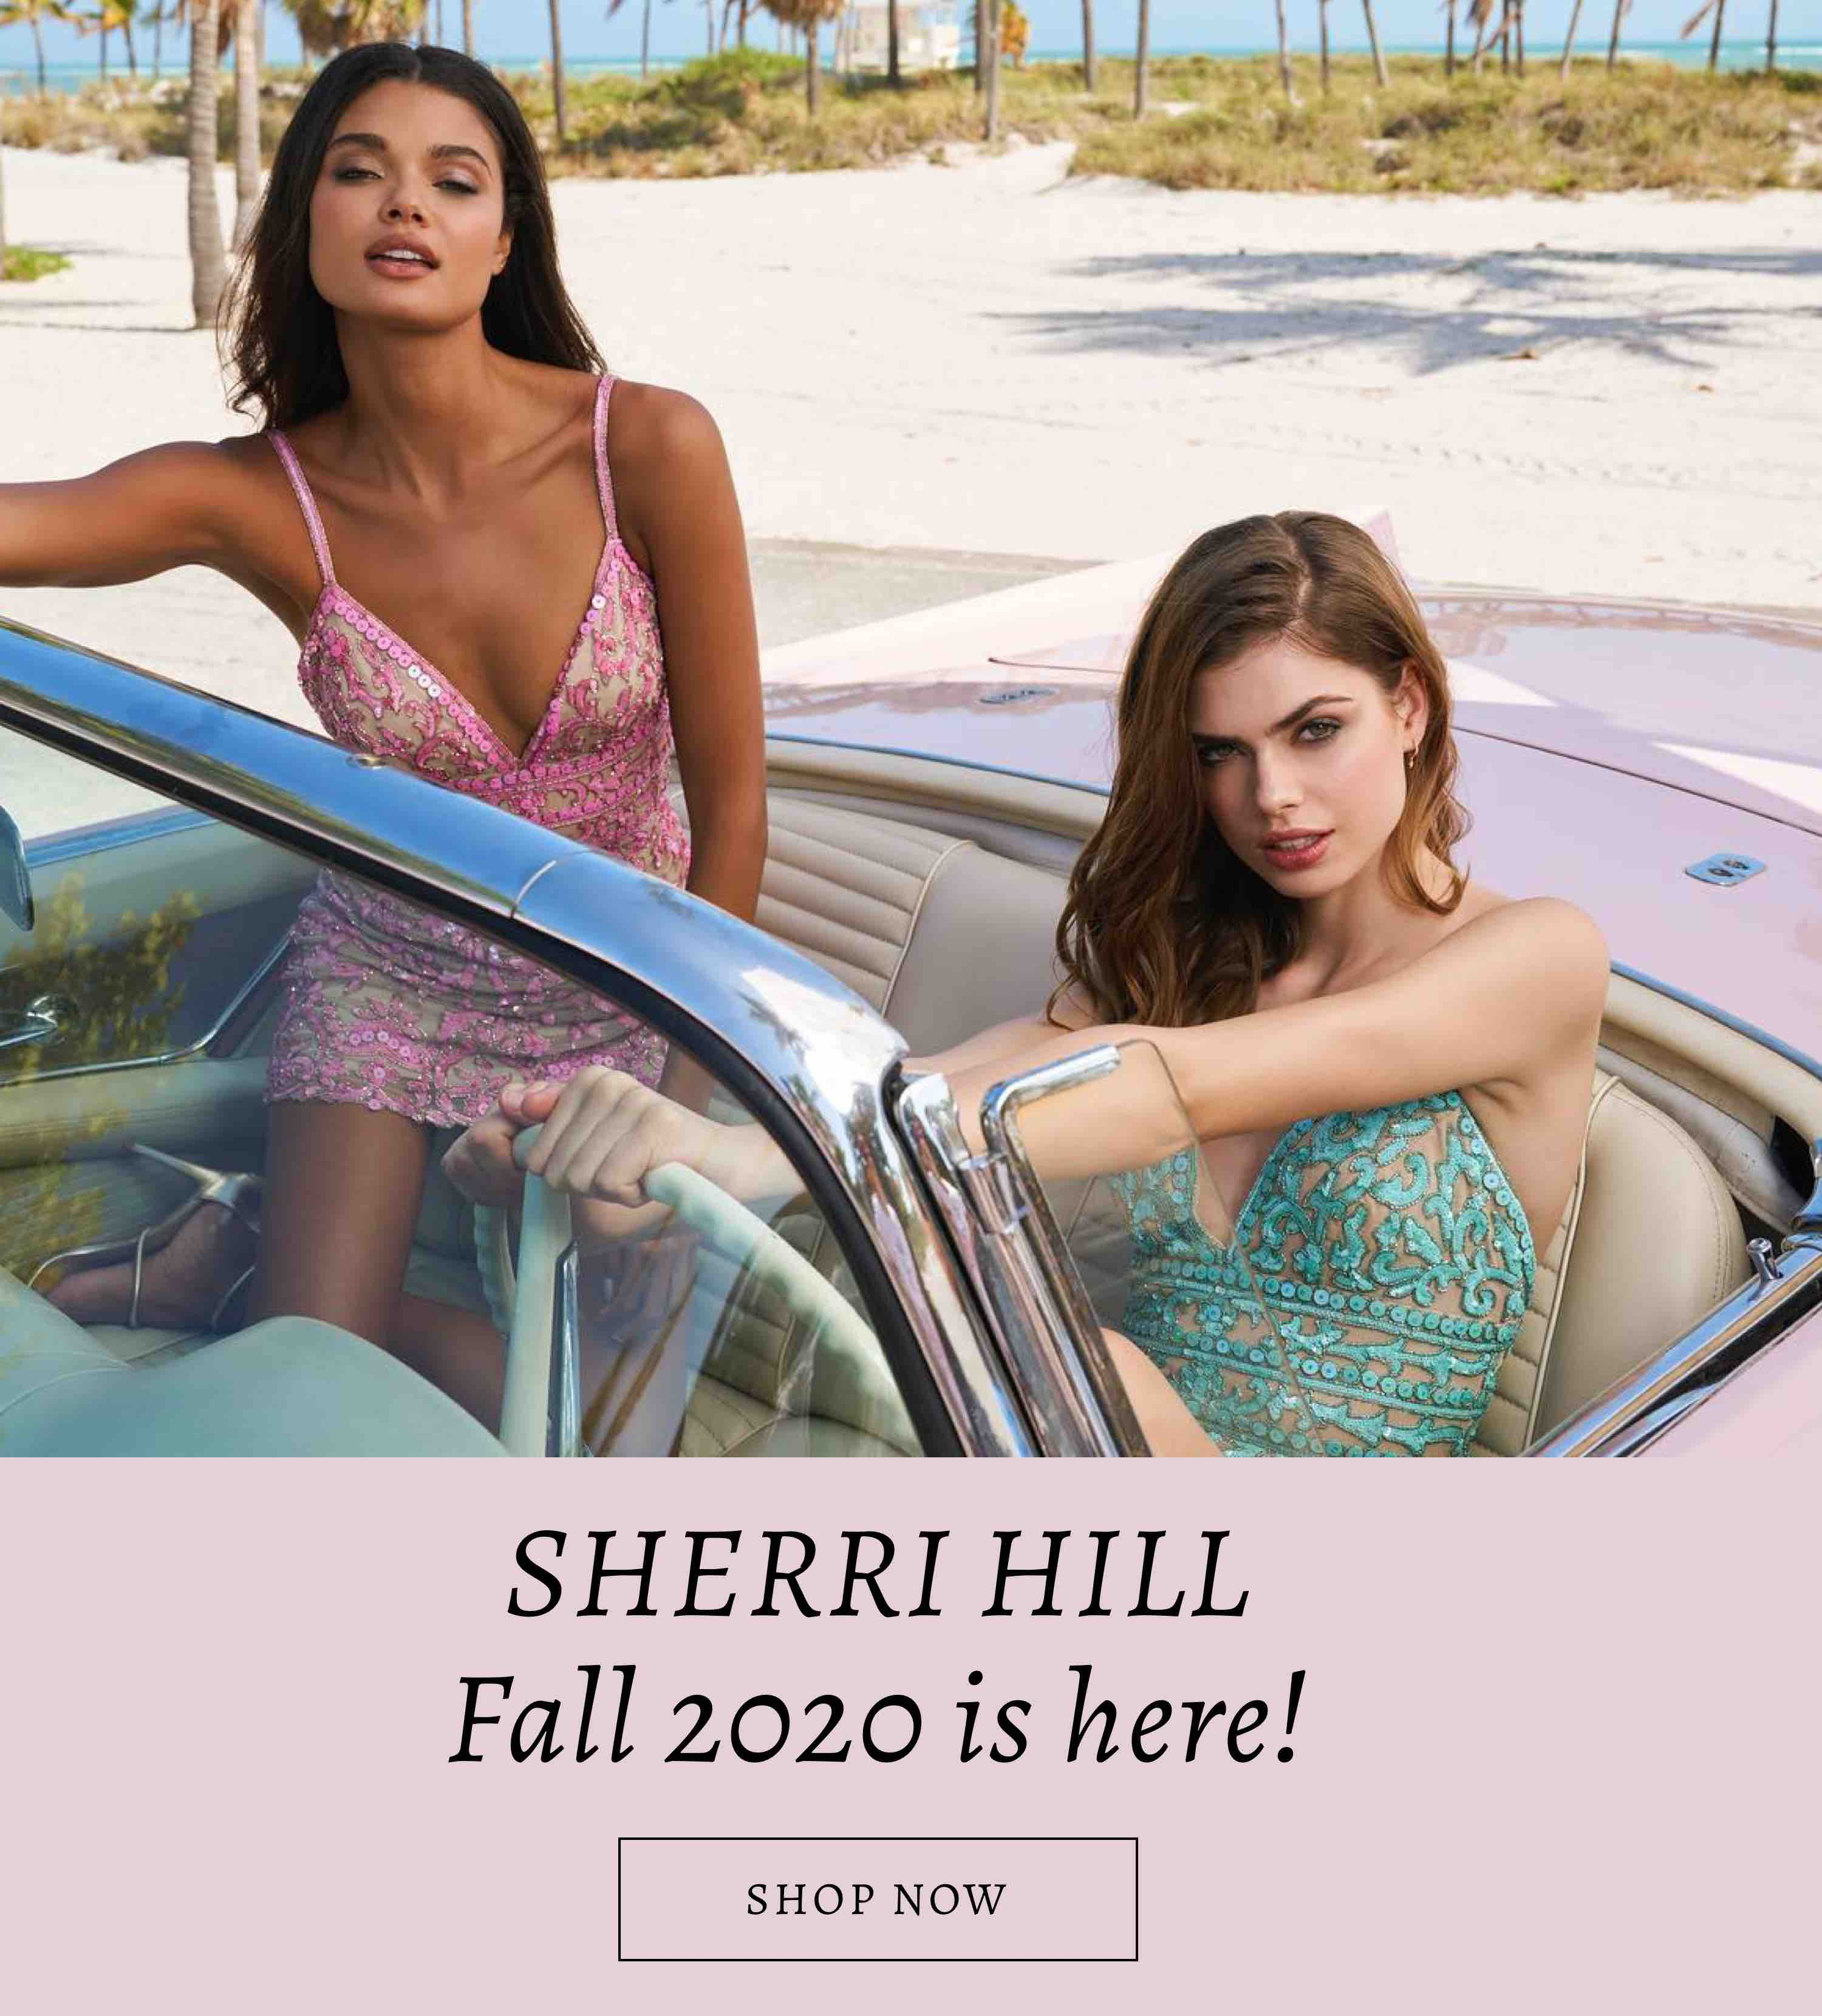 Two models in a car wearing Sherri Hill hoco dresses displayed on a banner for Cecile's Boutique shown on mobile device